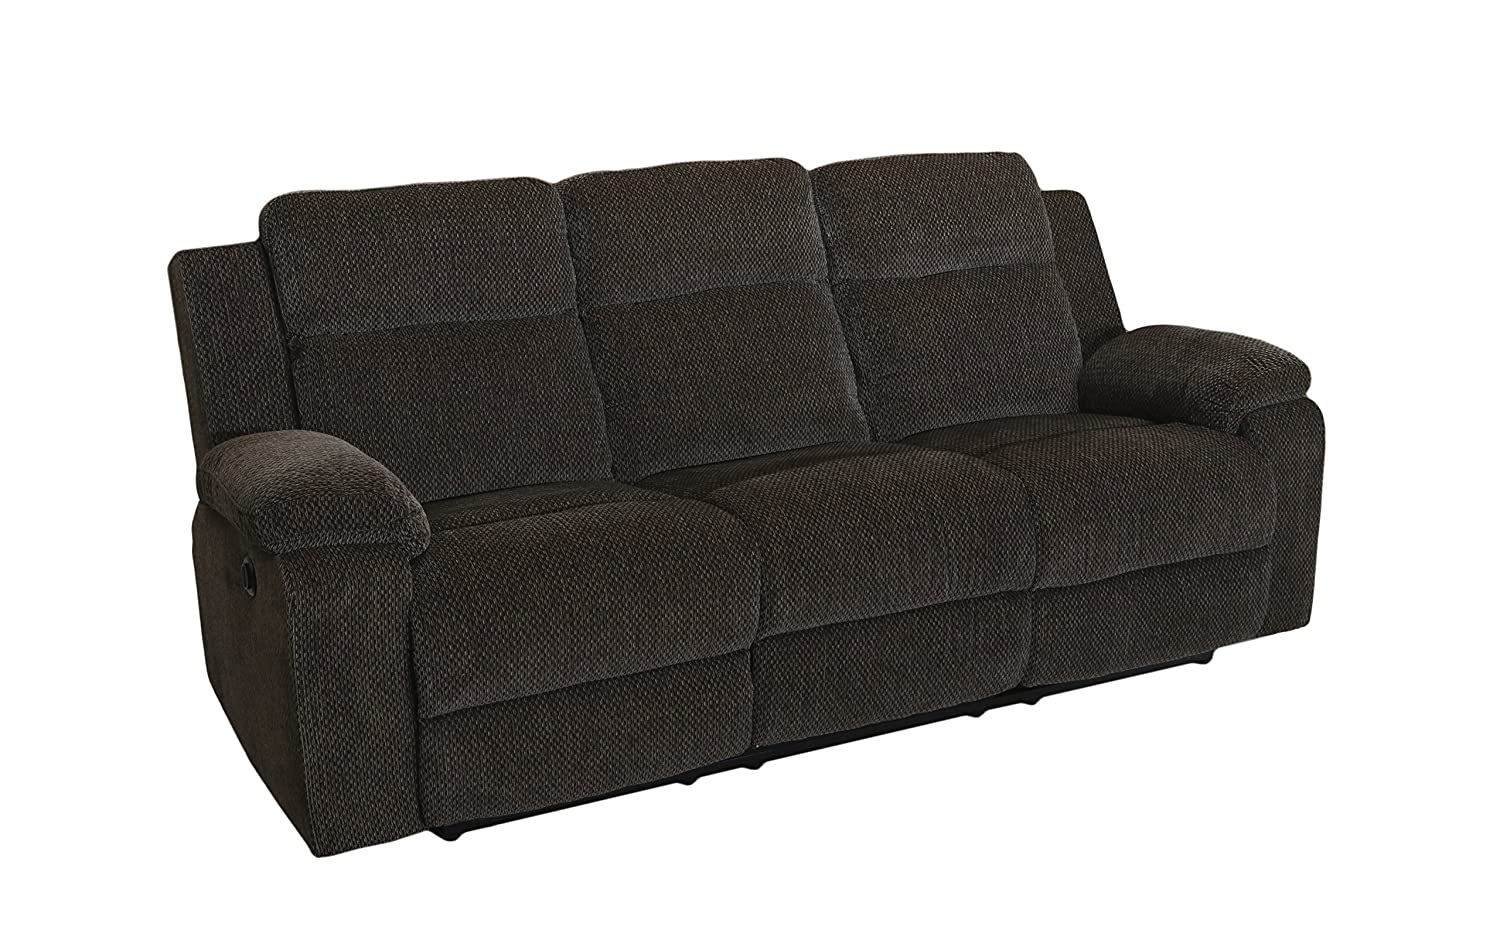 New Classic Furniture Burke Upholstery Recliner Sofa, Power, Light Ebony